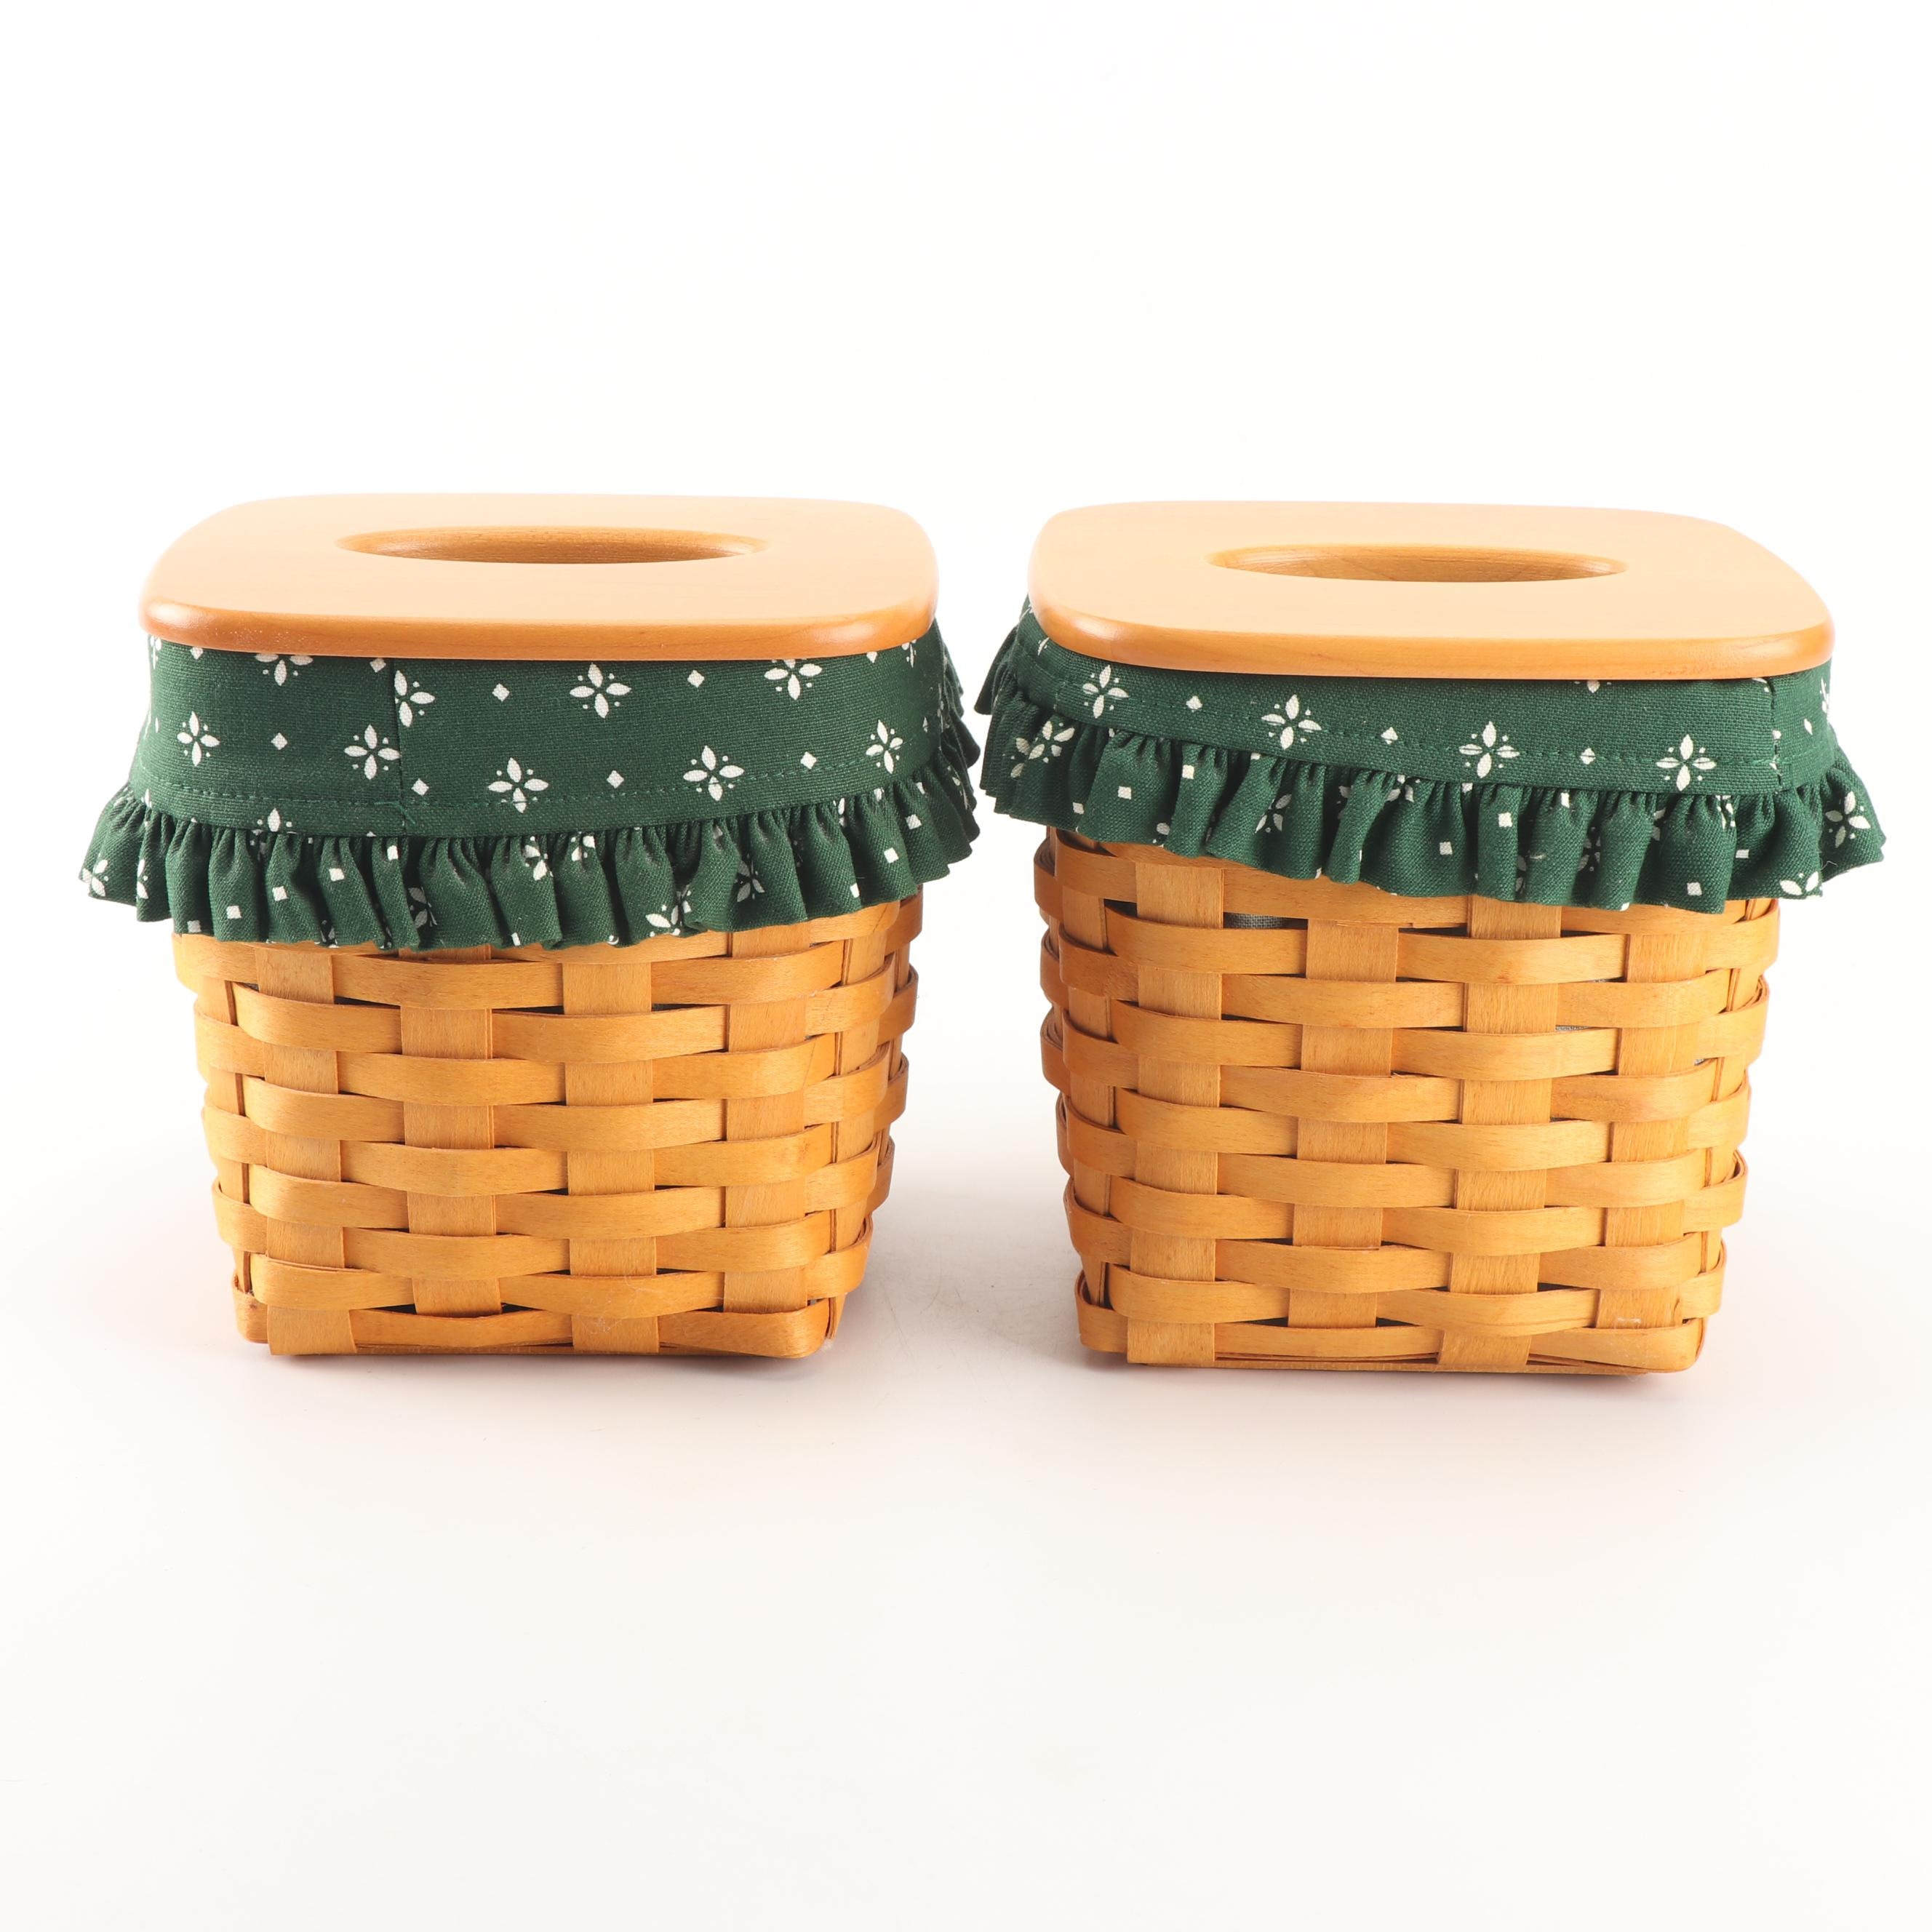 "Longaberger Tissue Baskets with ""Heritage Green"" Fabric Liners, 2000"